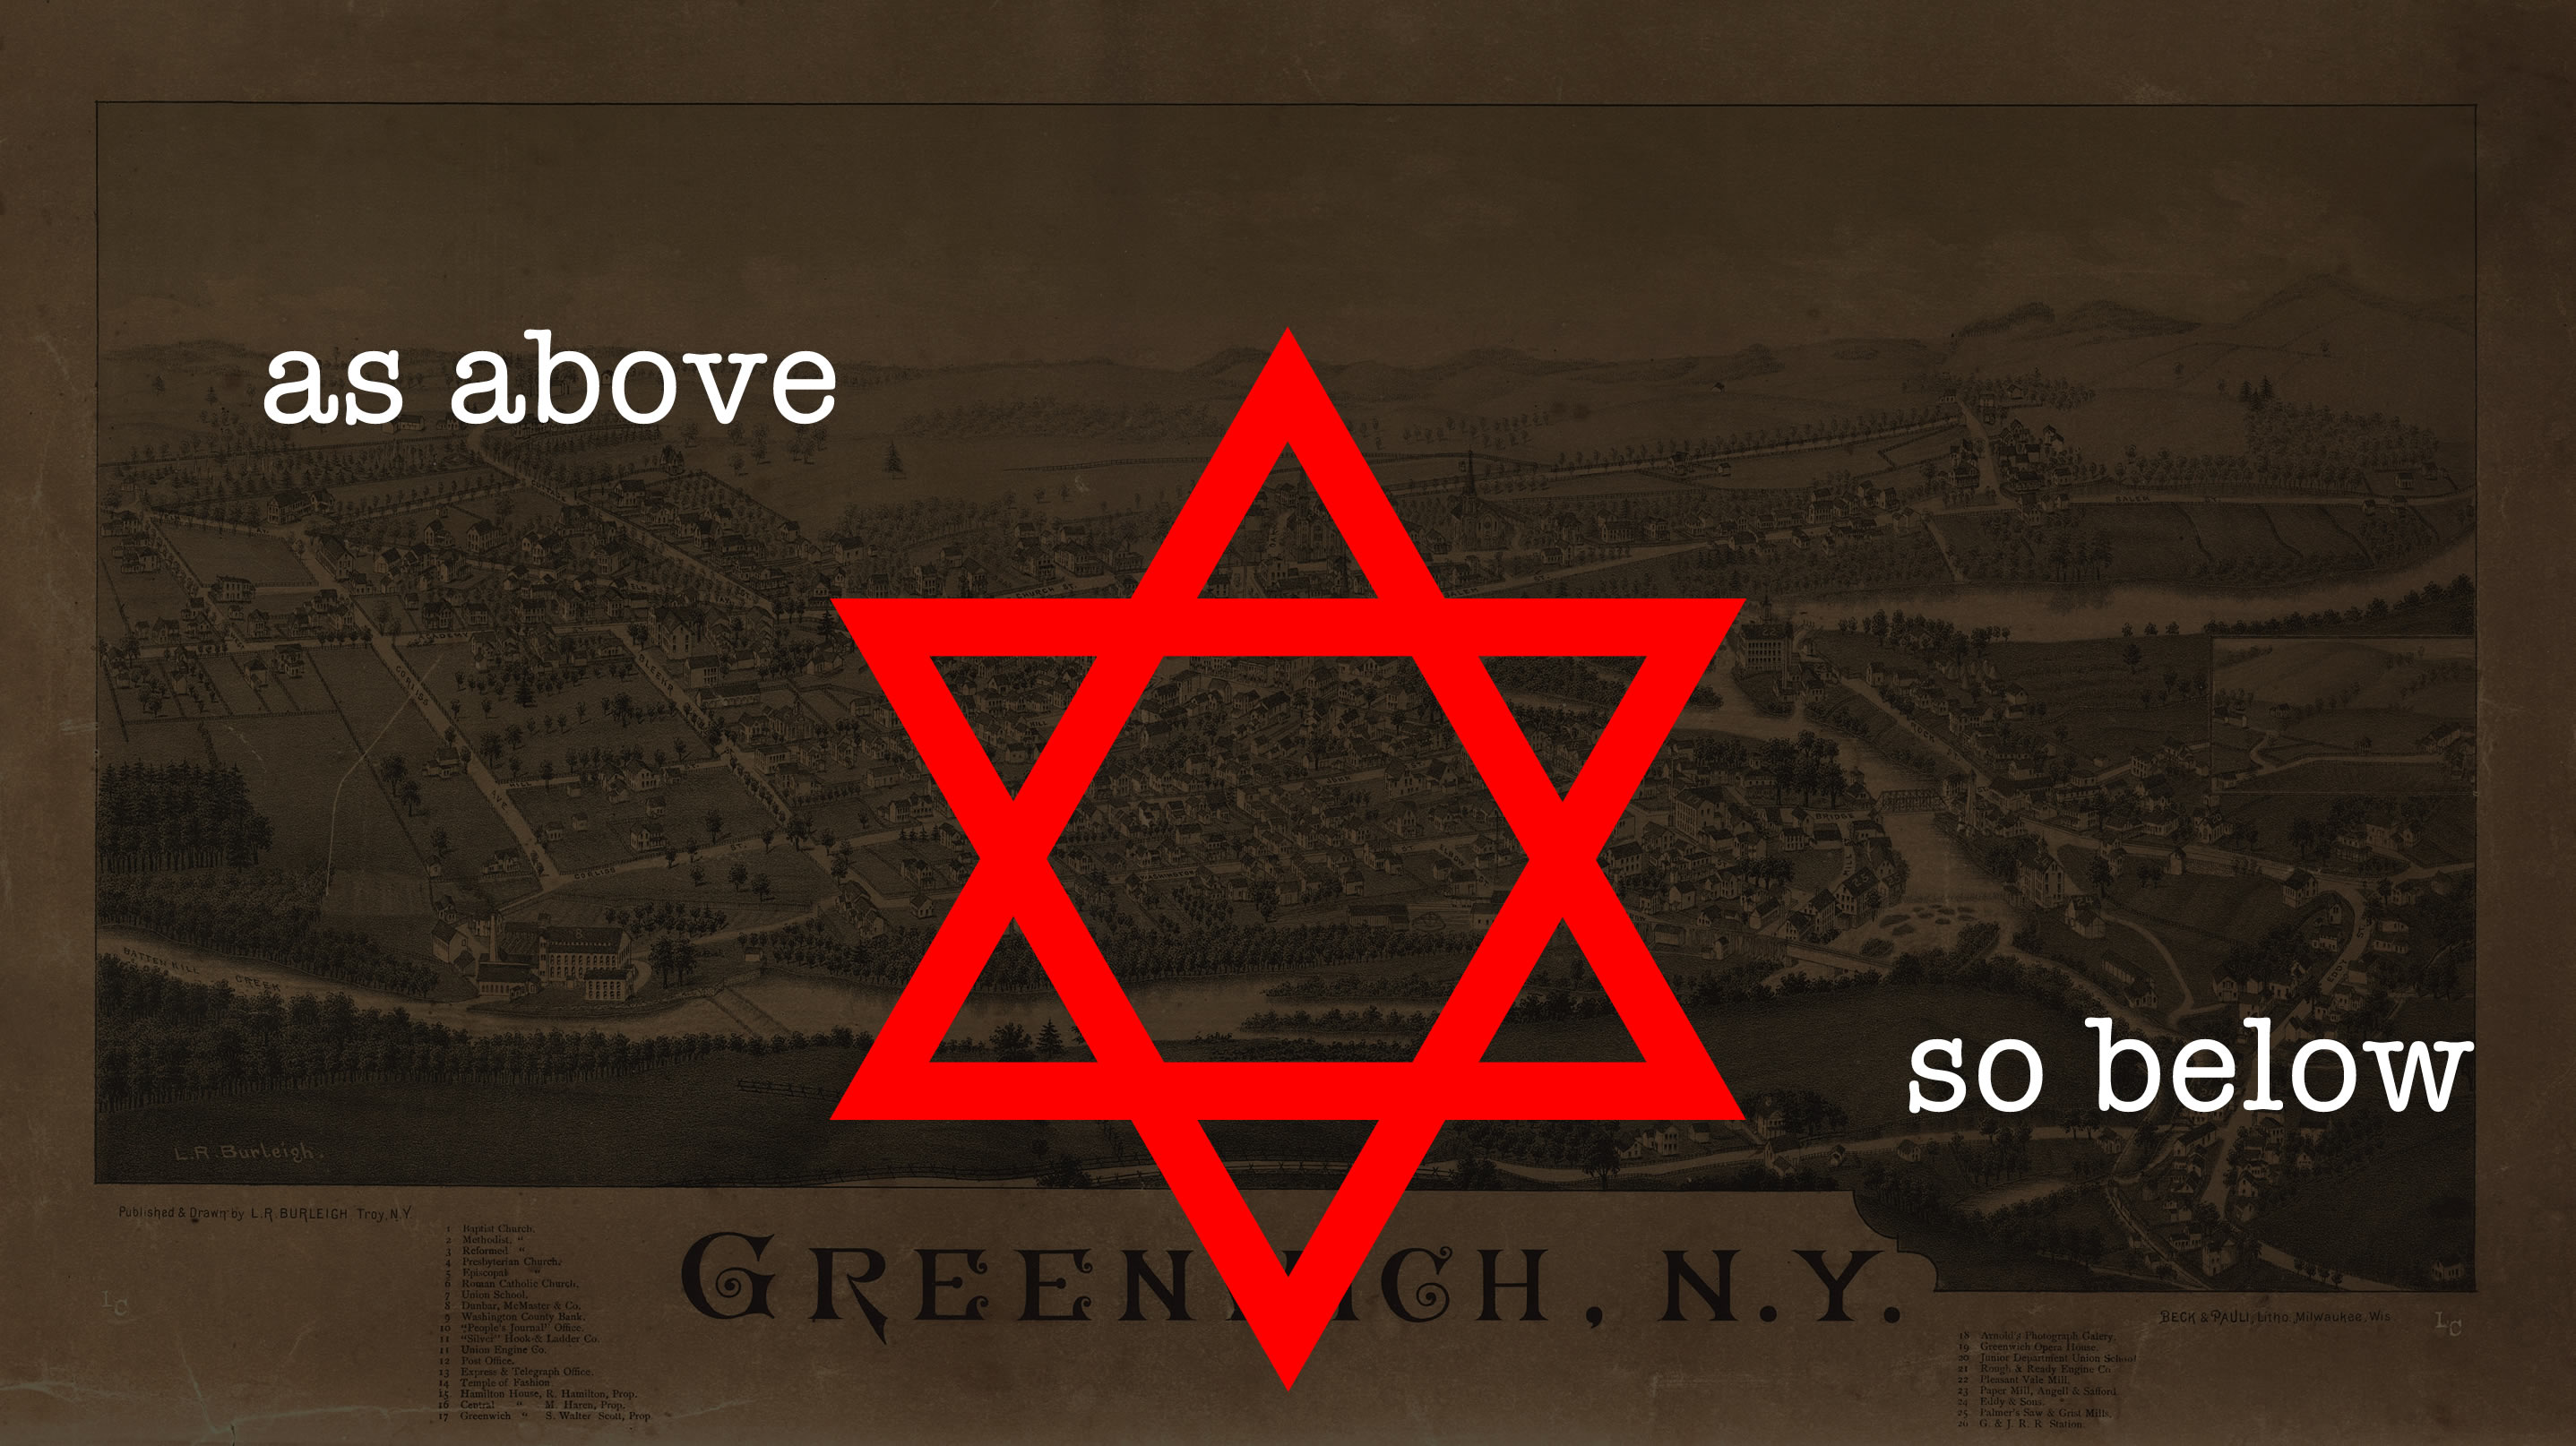 Green Witch Village New York Star of David As Above So Below